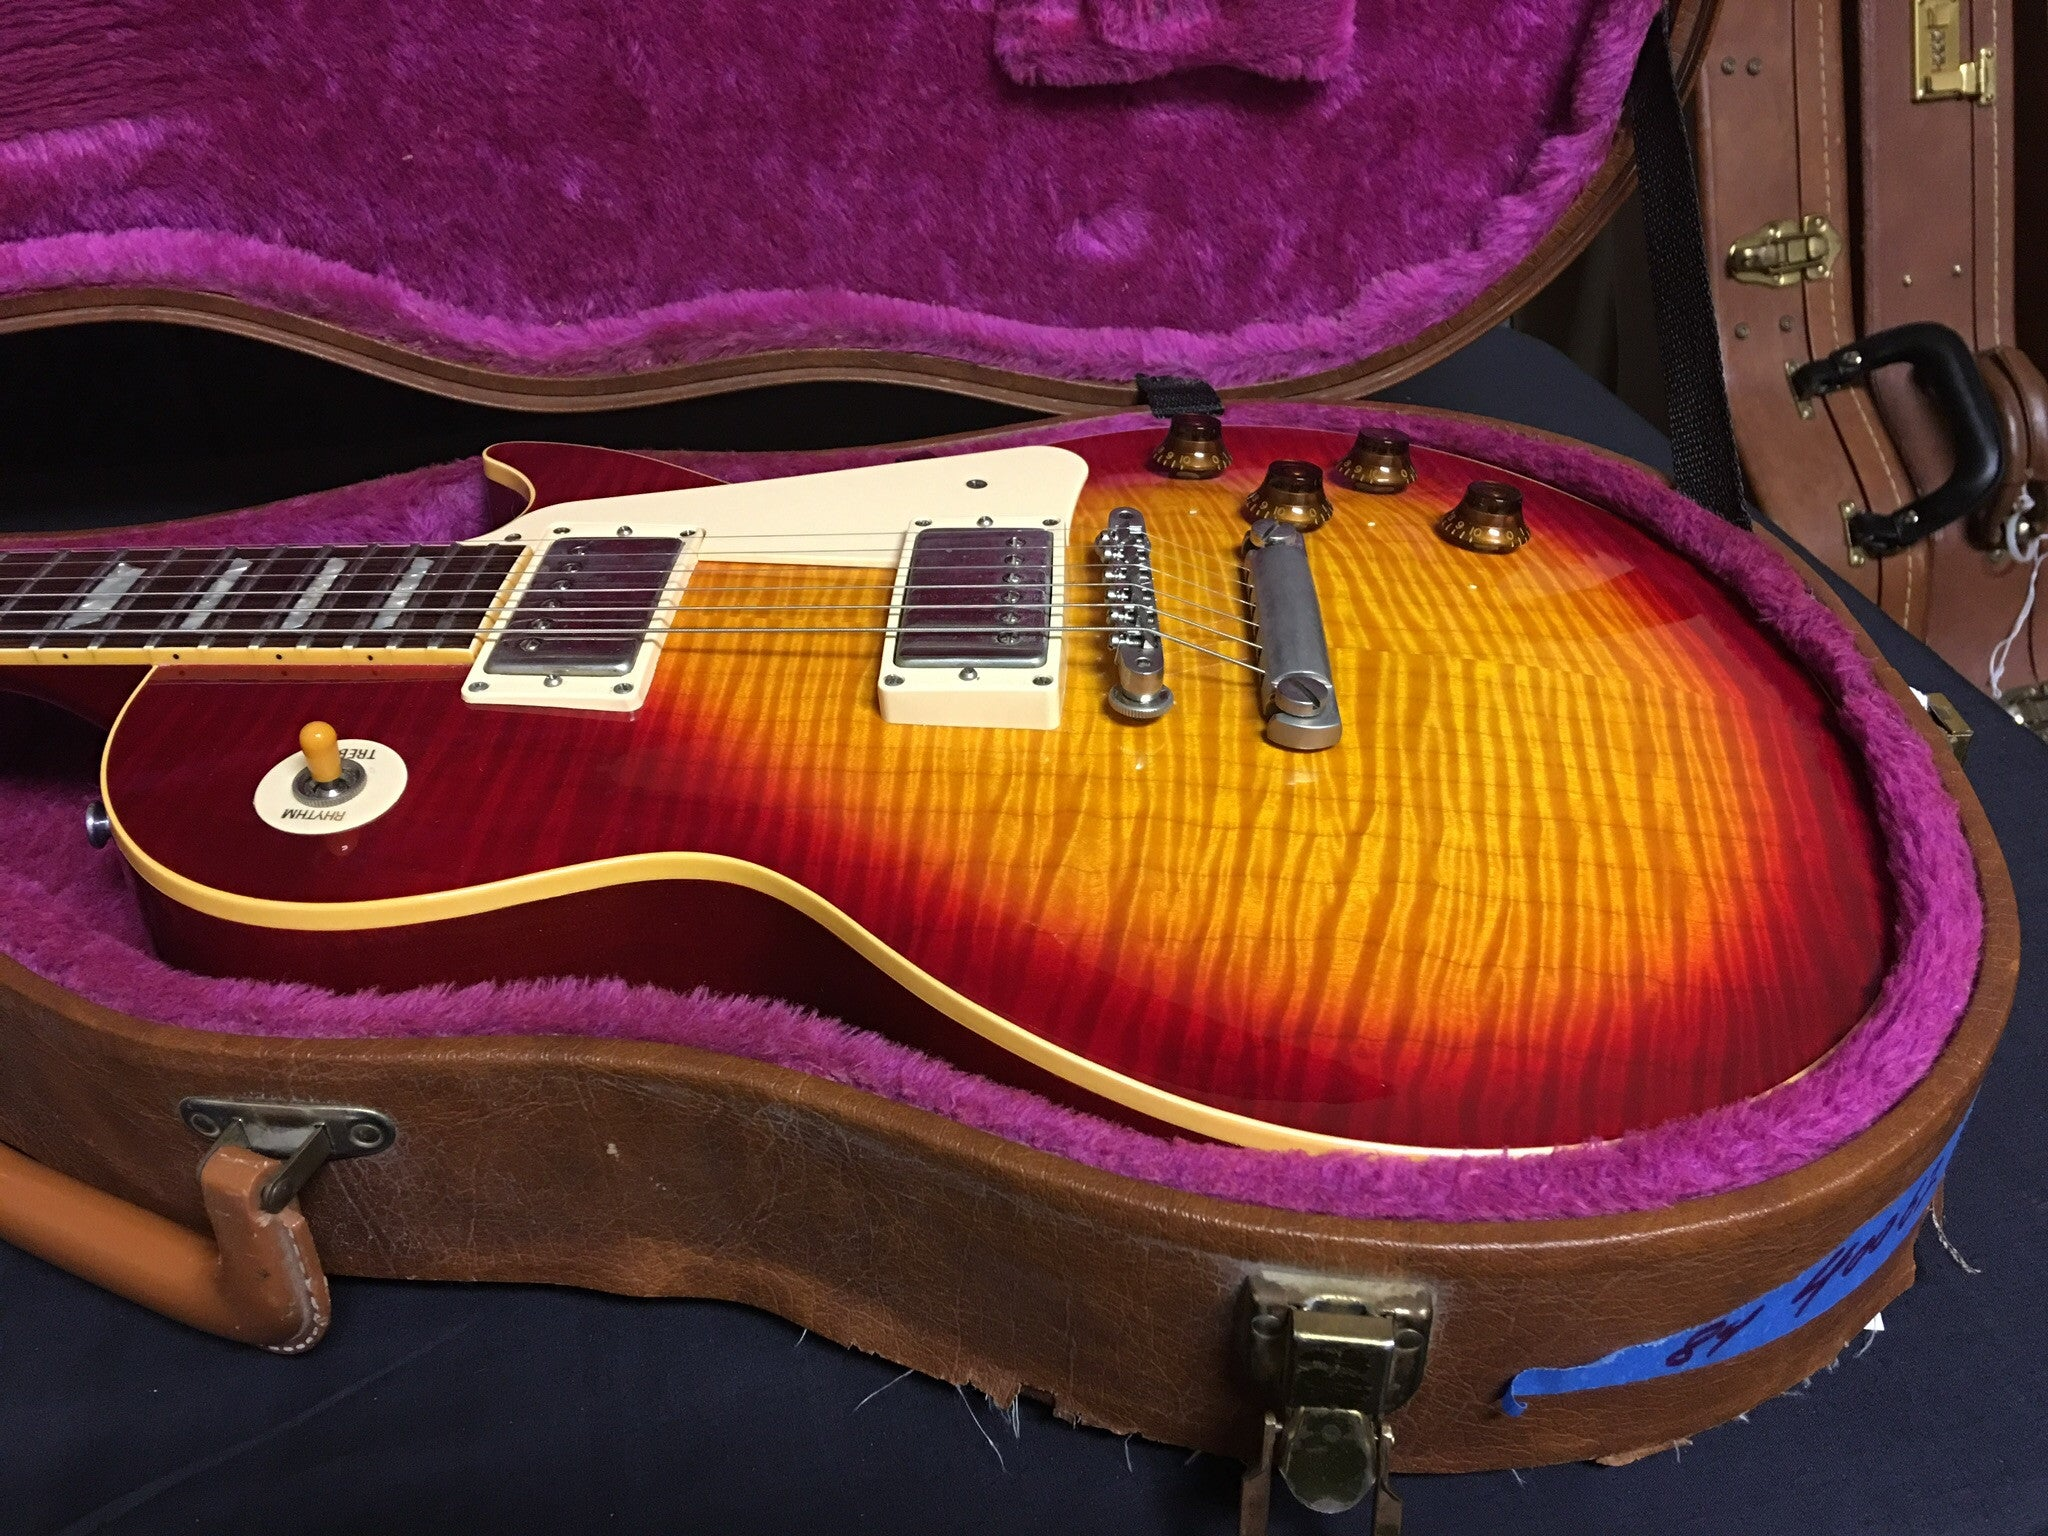 1984 Les Paul Reissue Cherry Sunburst # 40062 ****SOLD****